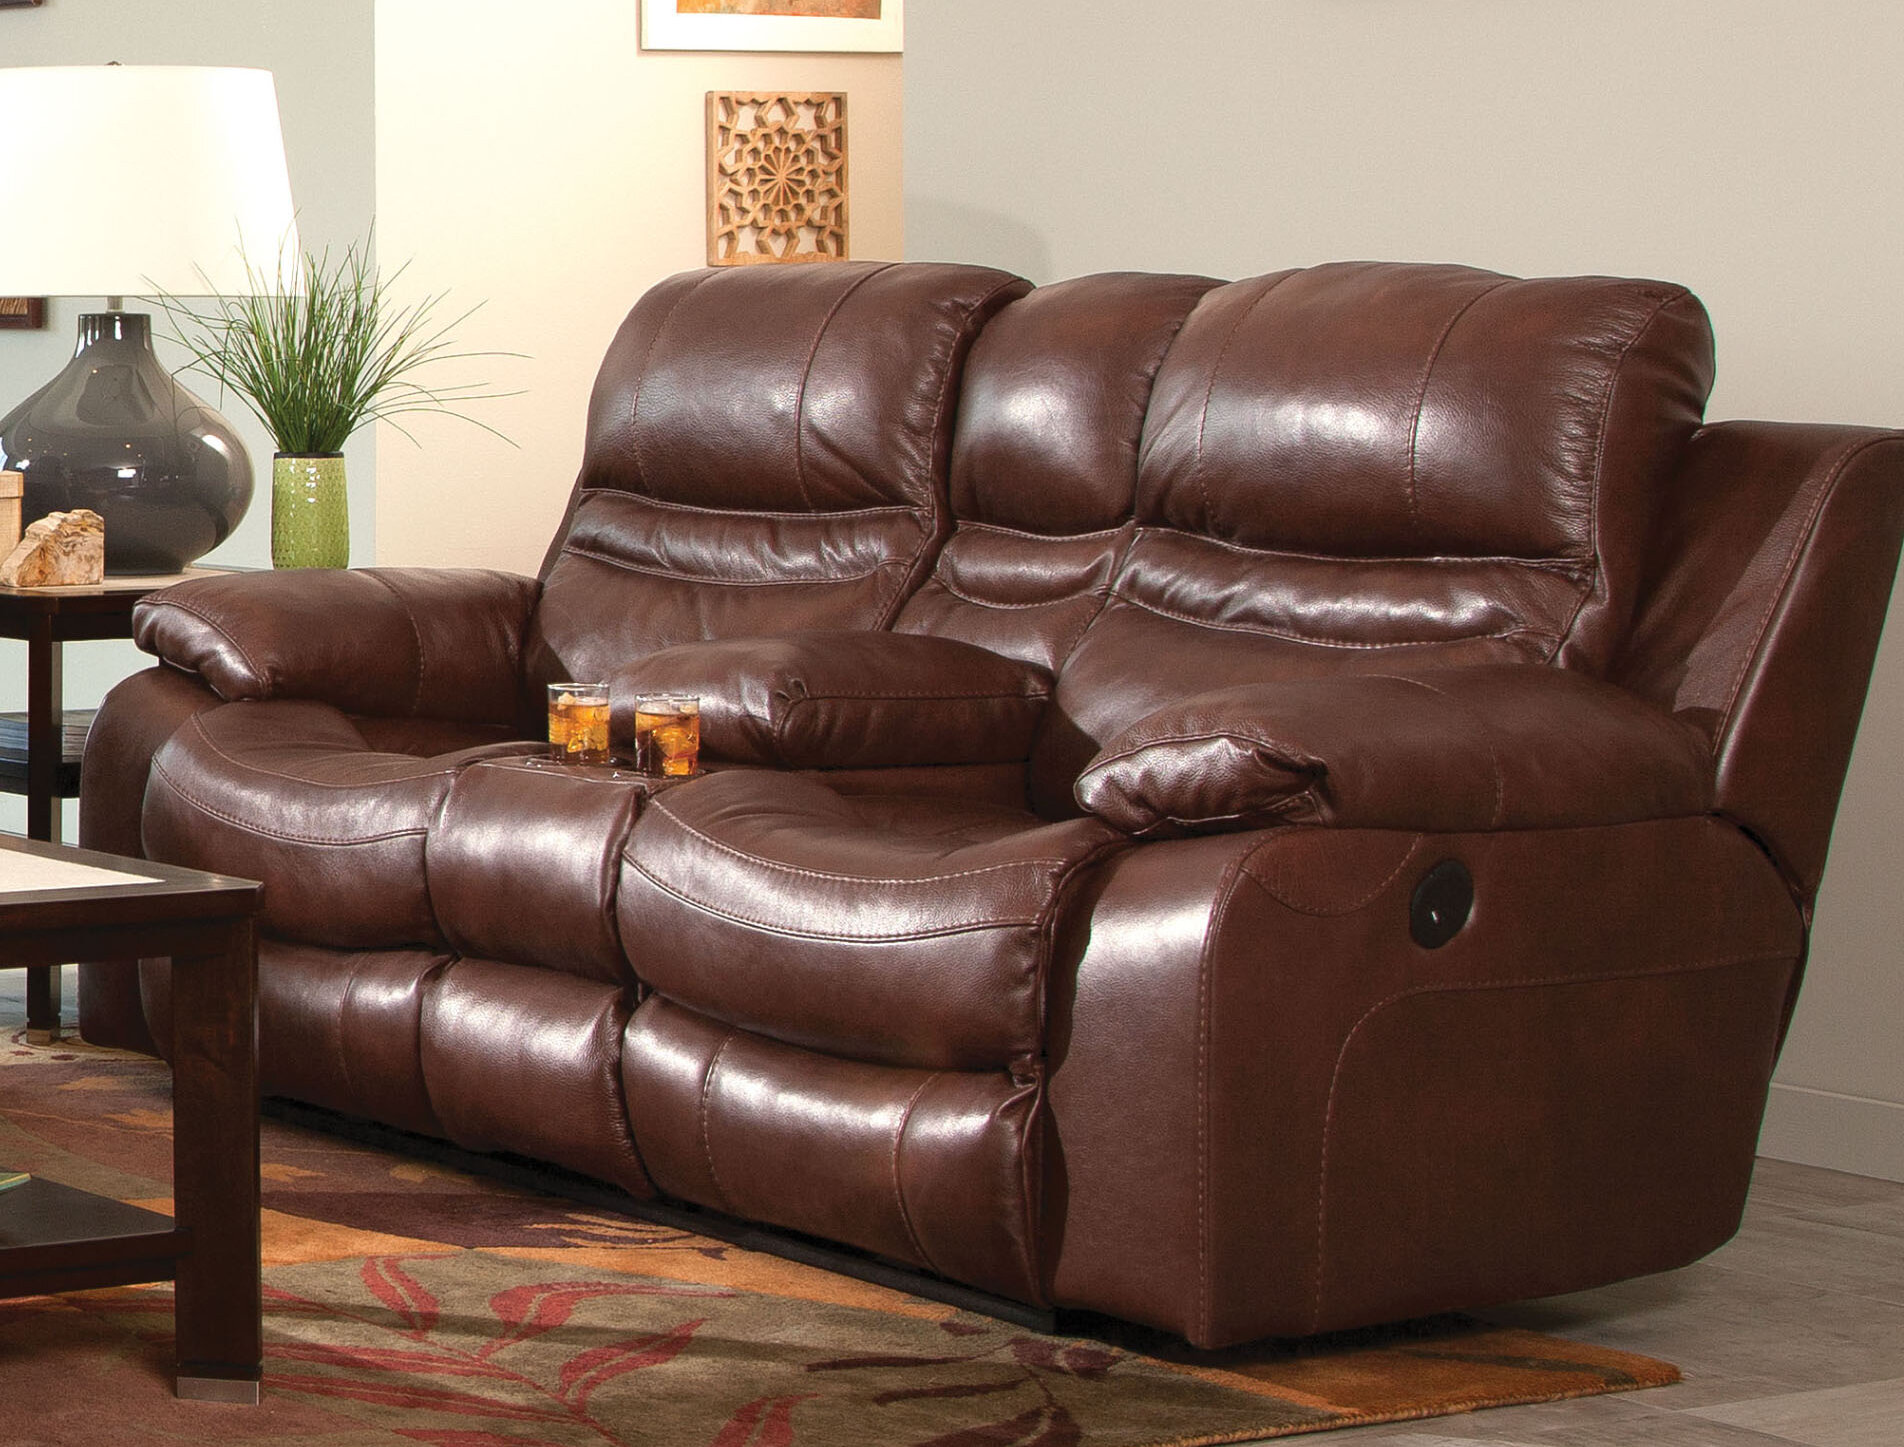 Miraculous Patton Leather Reclining Loveseat Squirreltailoven Fun Painted Chair Ideas Images Squirreltailovenorg